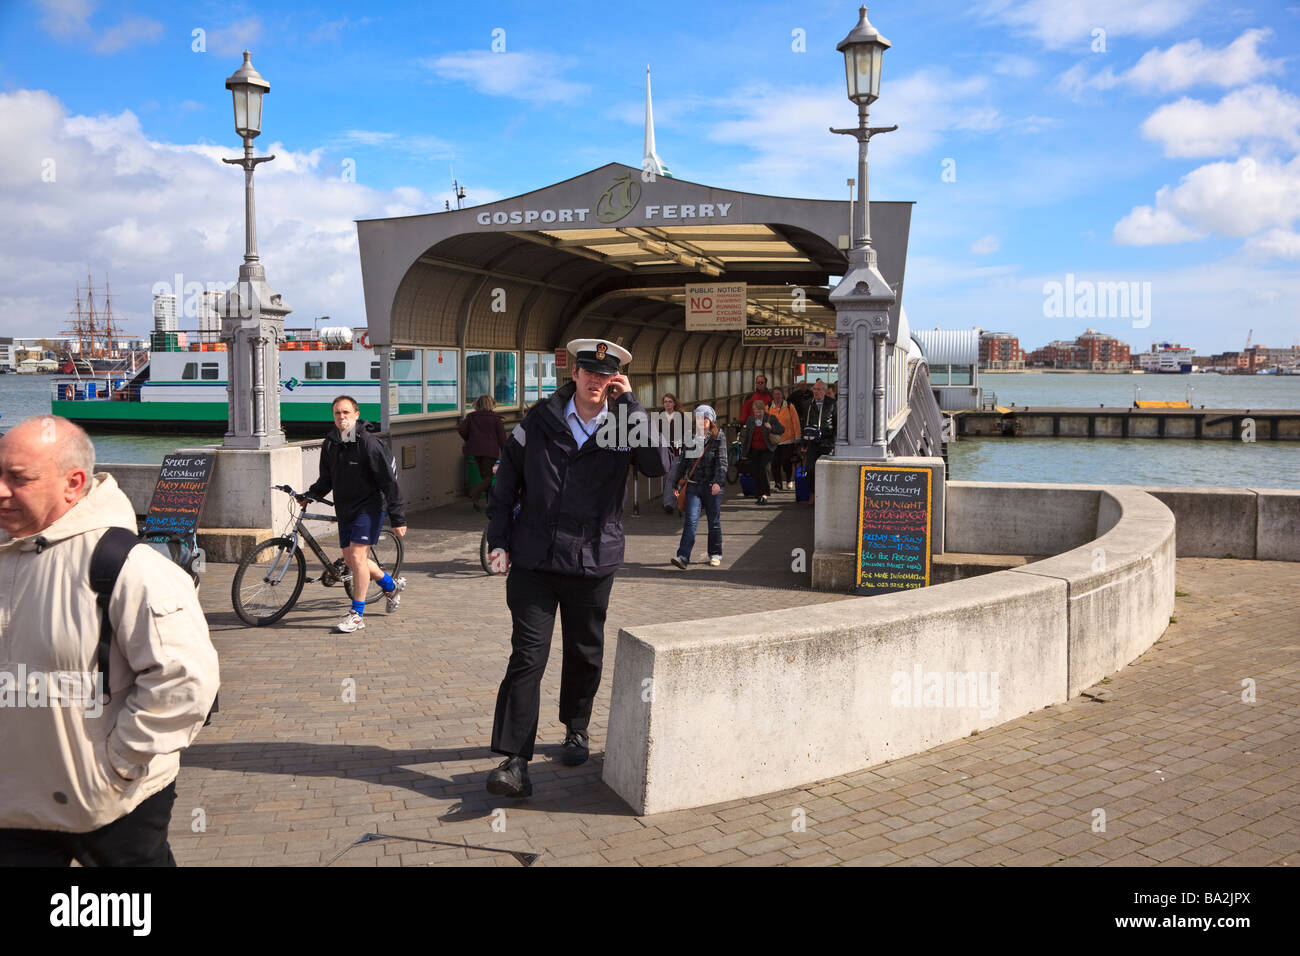 A Sailor on a mobile phone embarking at Gosport from the Porstmouth Ferry Stock Photo